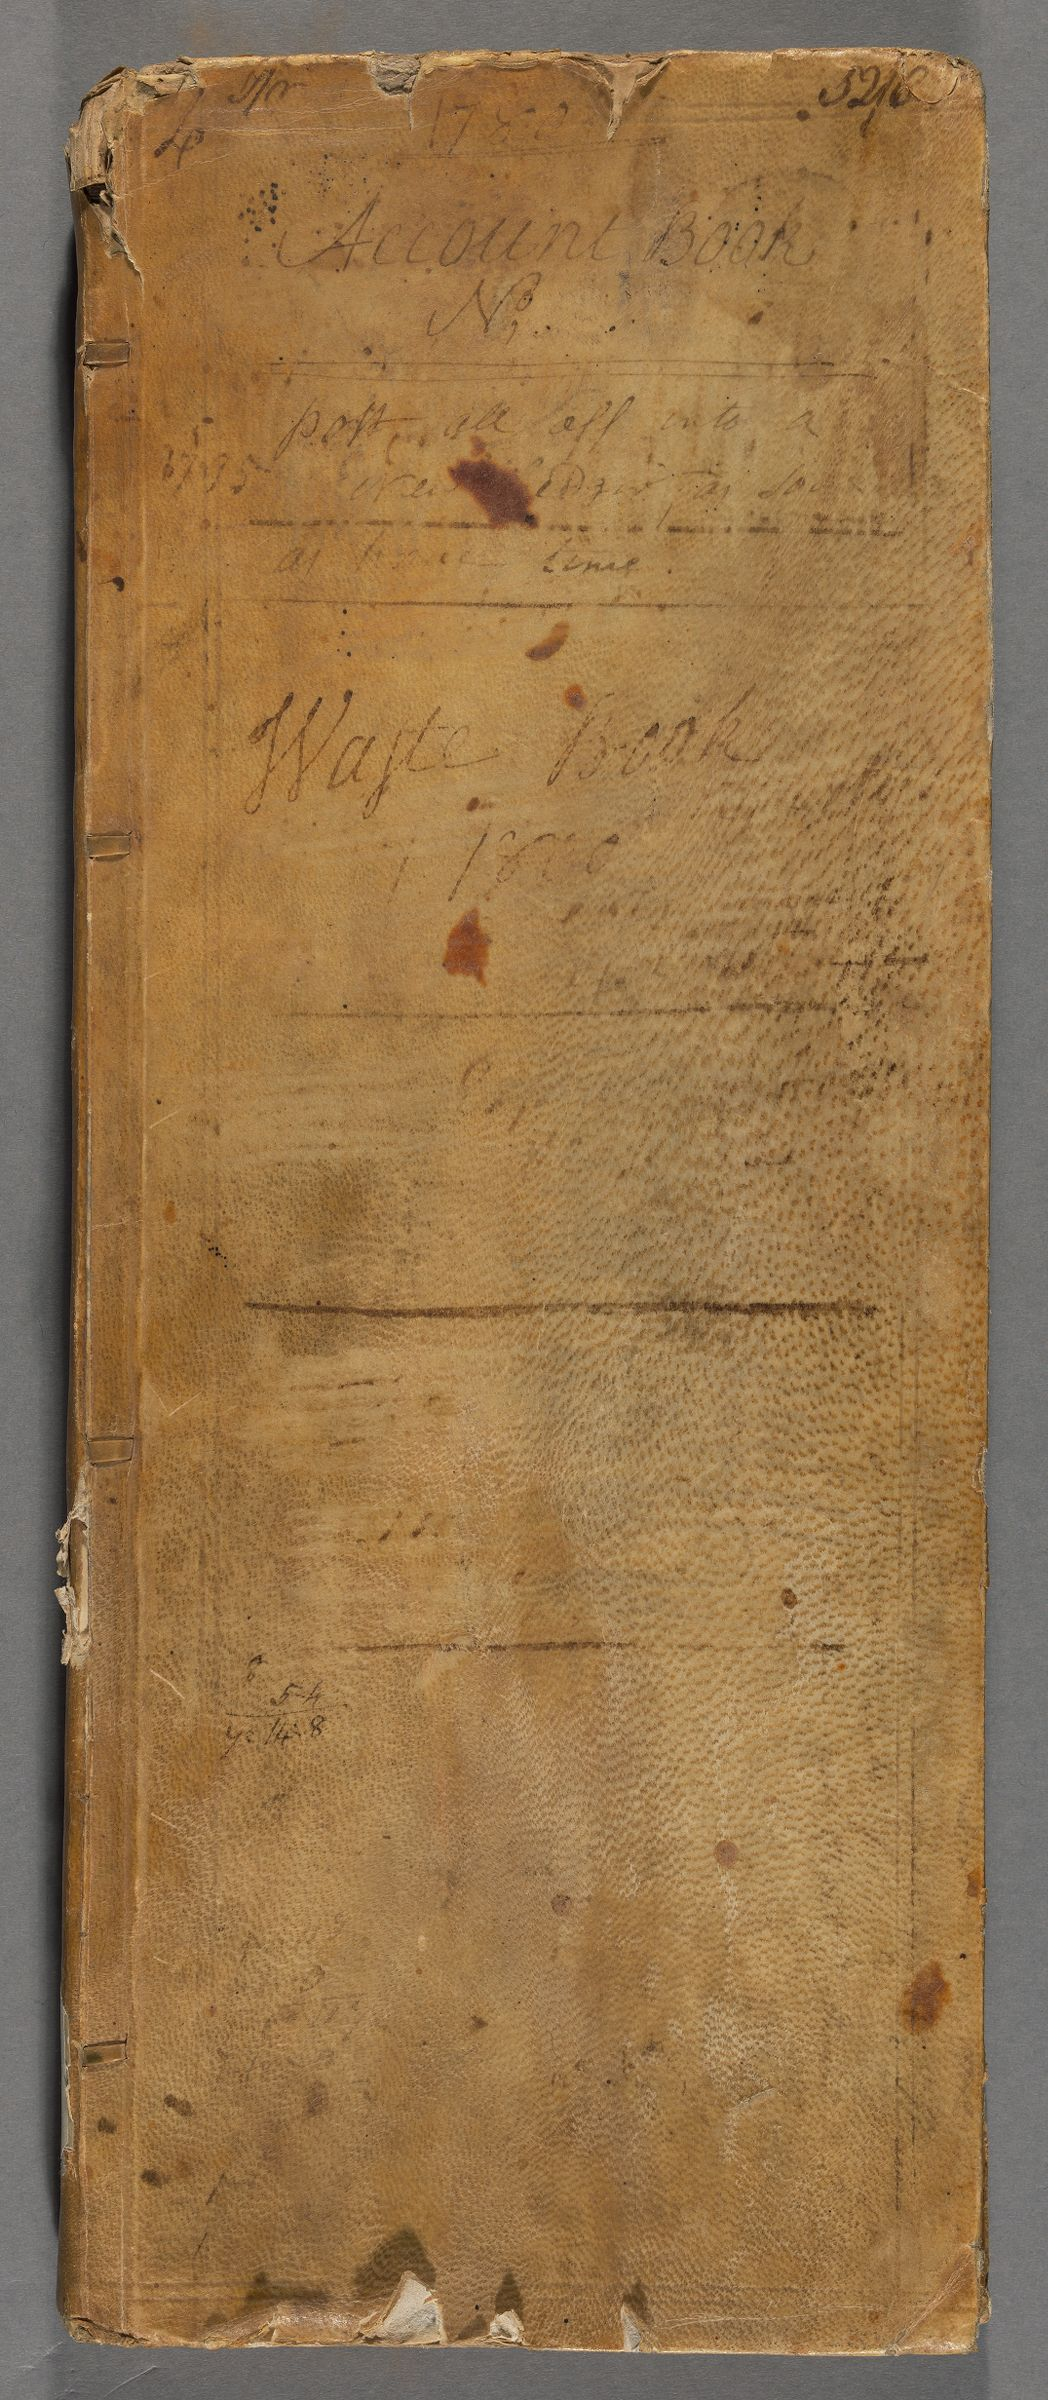 Account book, 1780-1802 (inclusive)